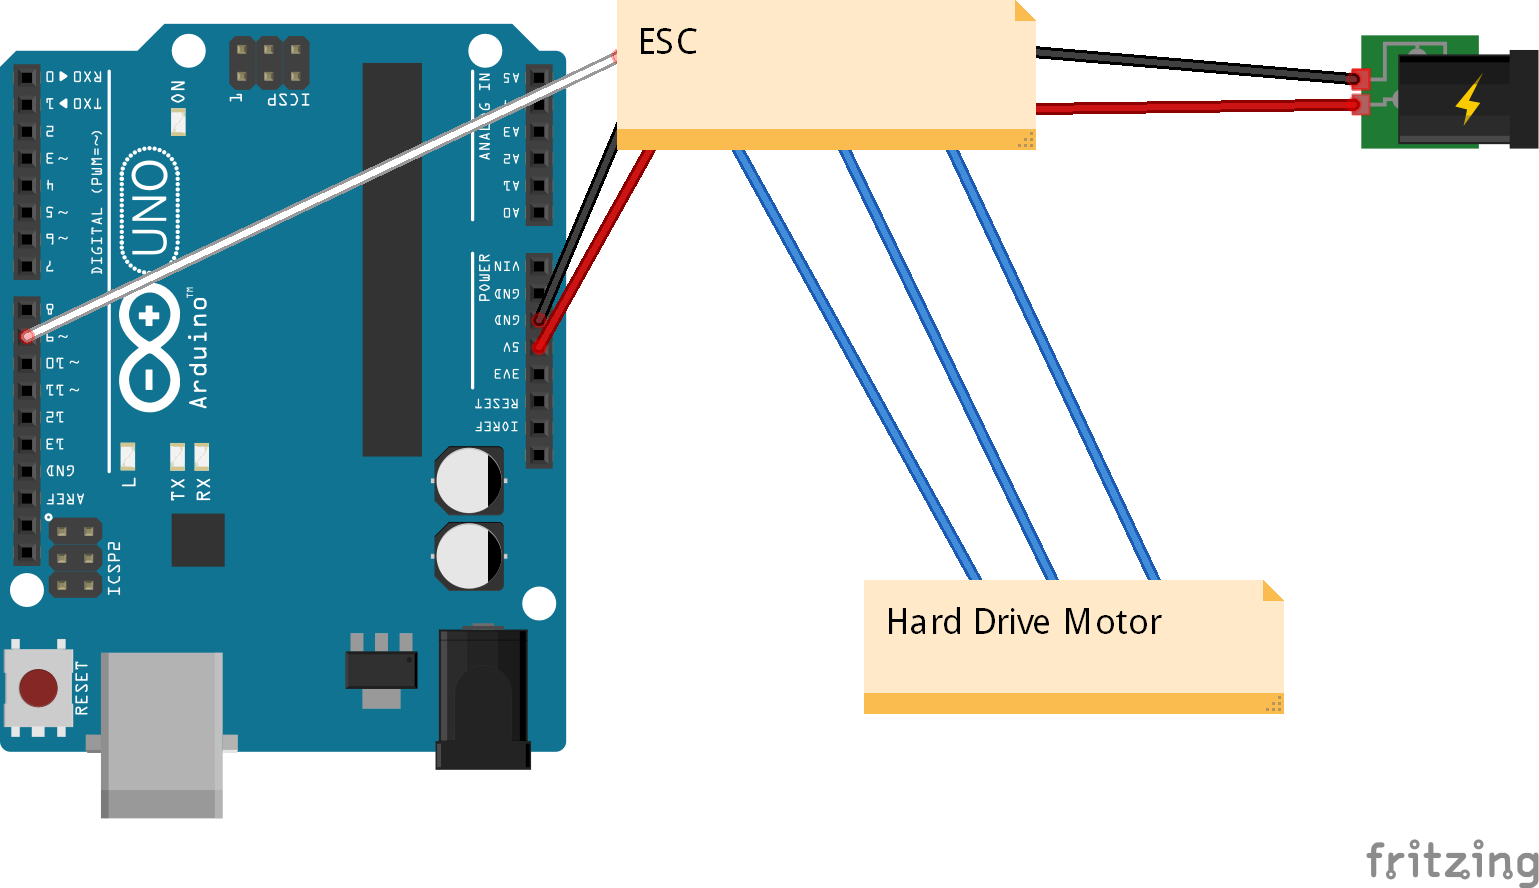 Developing a Low-Cost Microcentrifuge Using E-Waste - Hackster.io